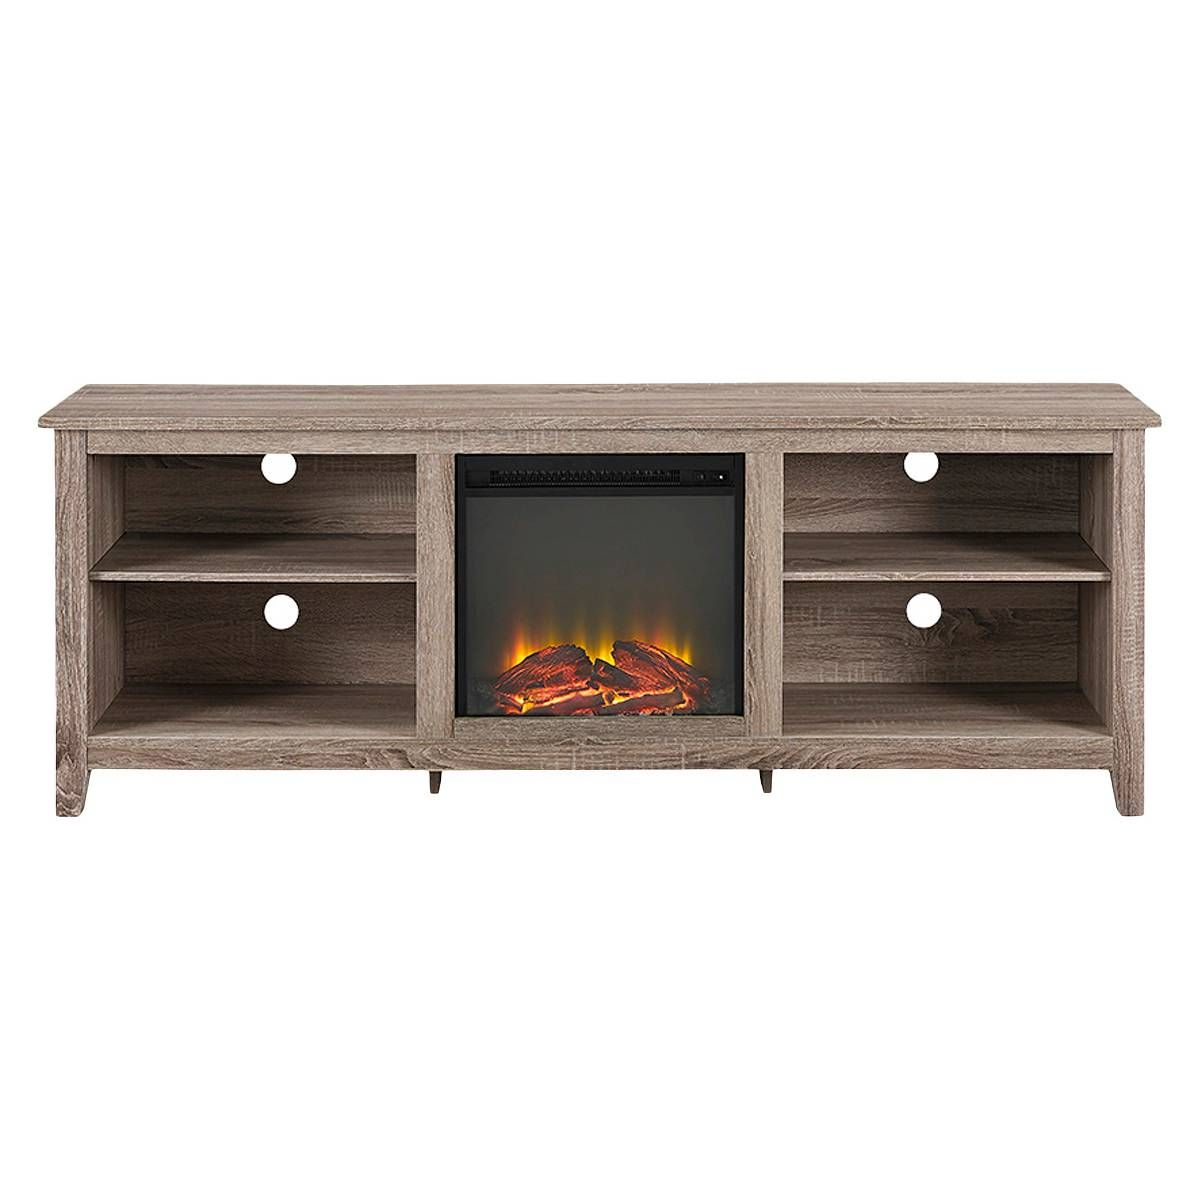 Saracina home tv stand with fireplace tv stands tvs and target